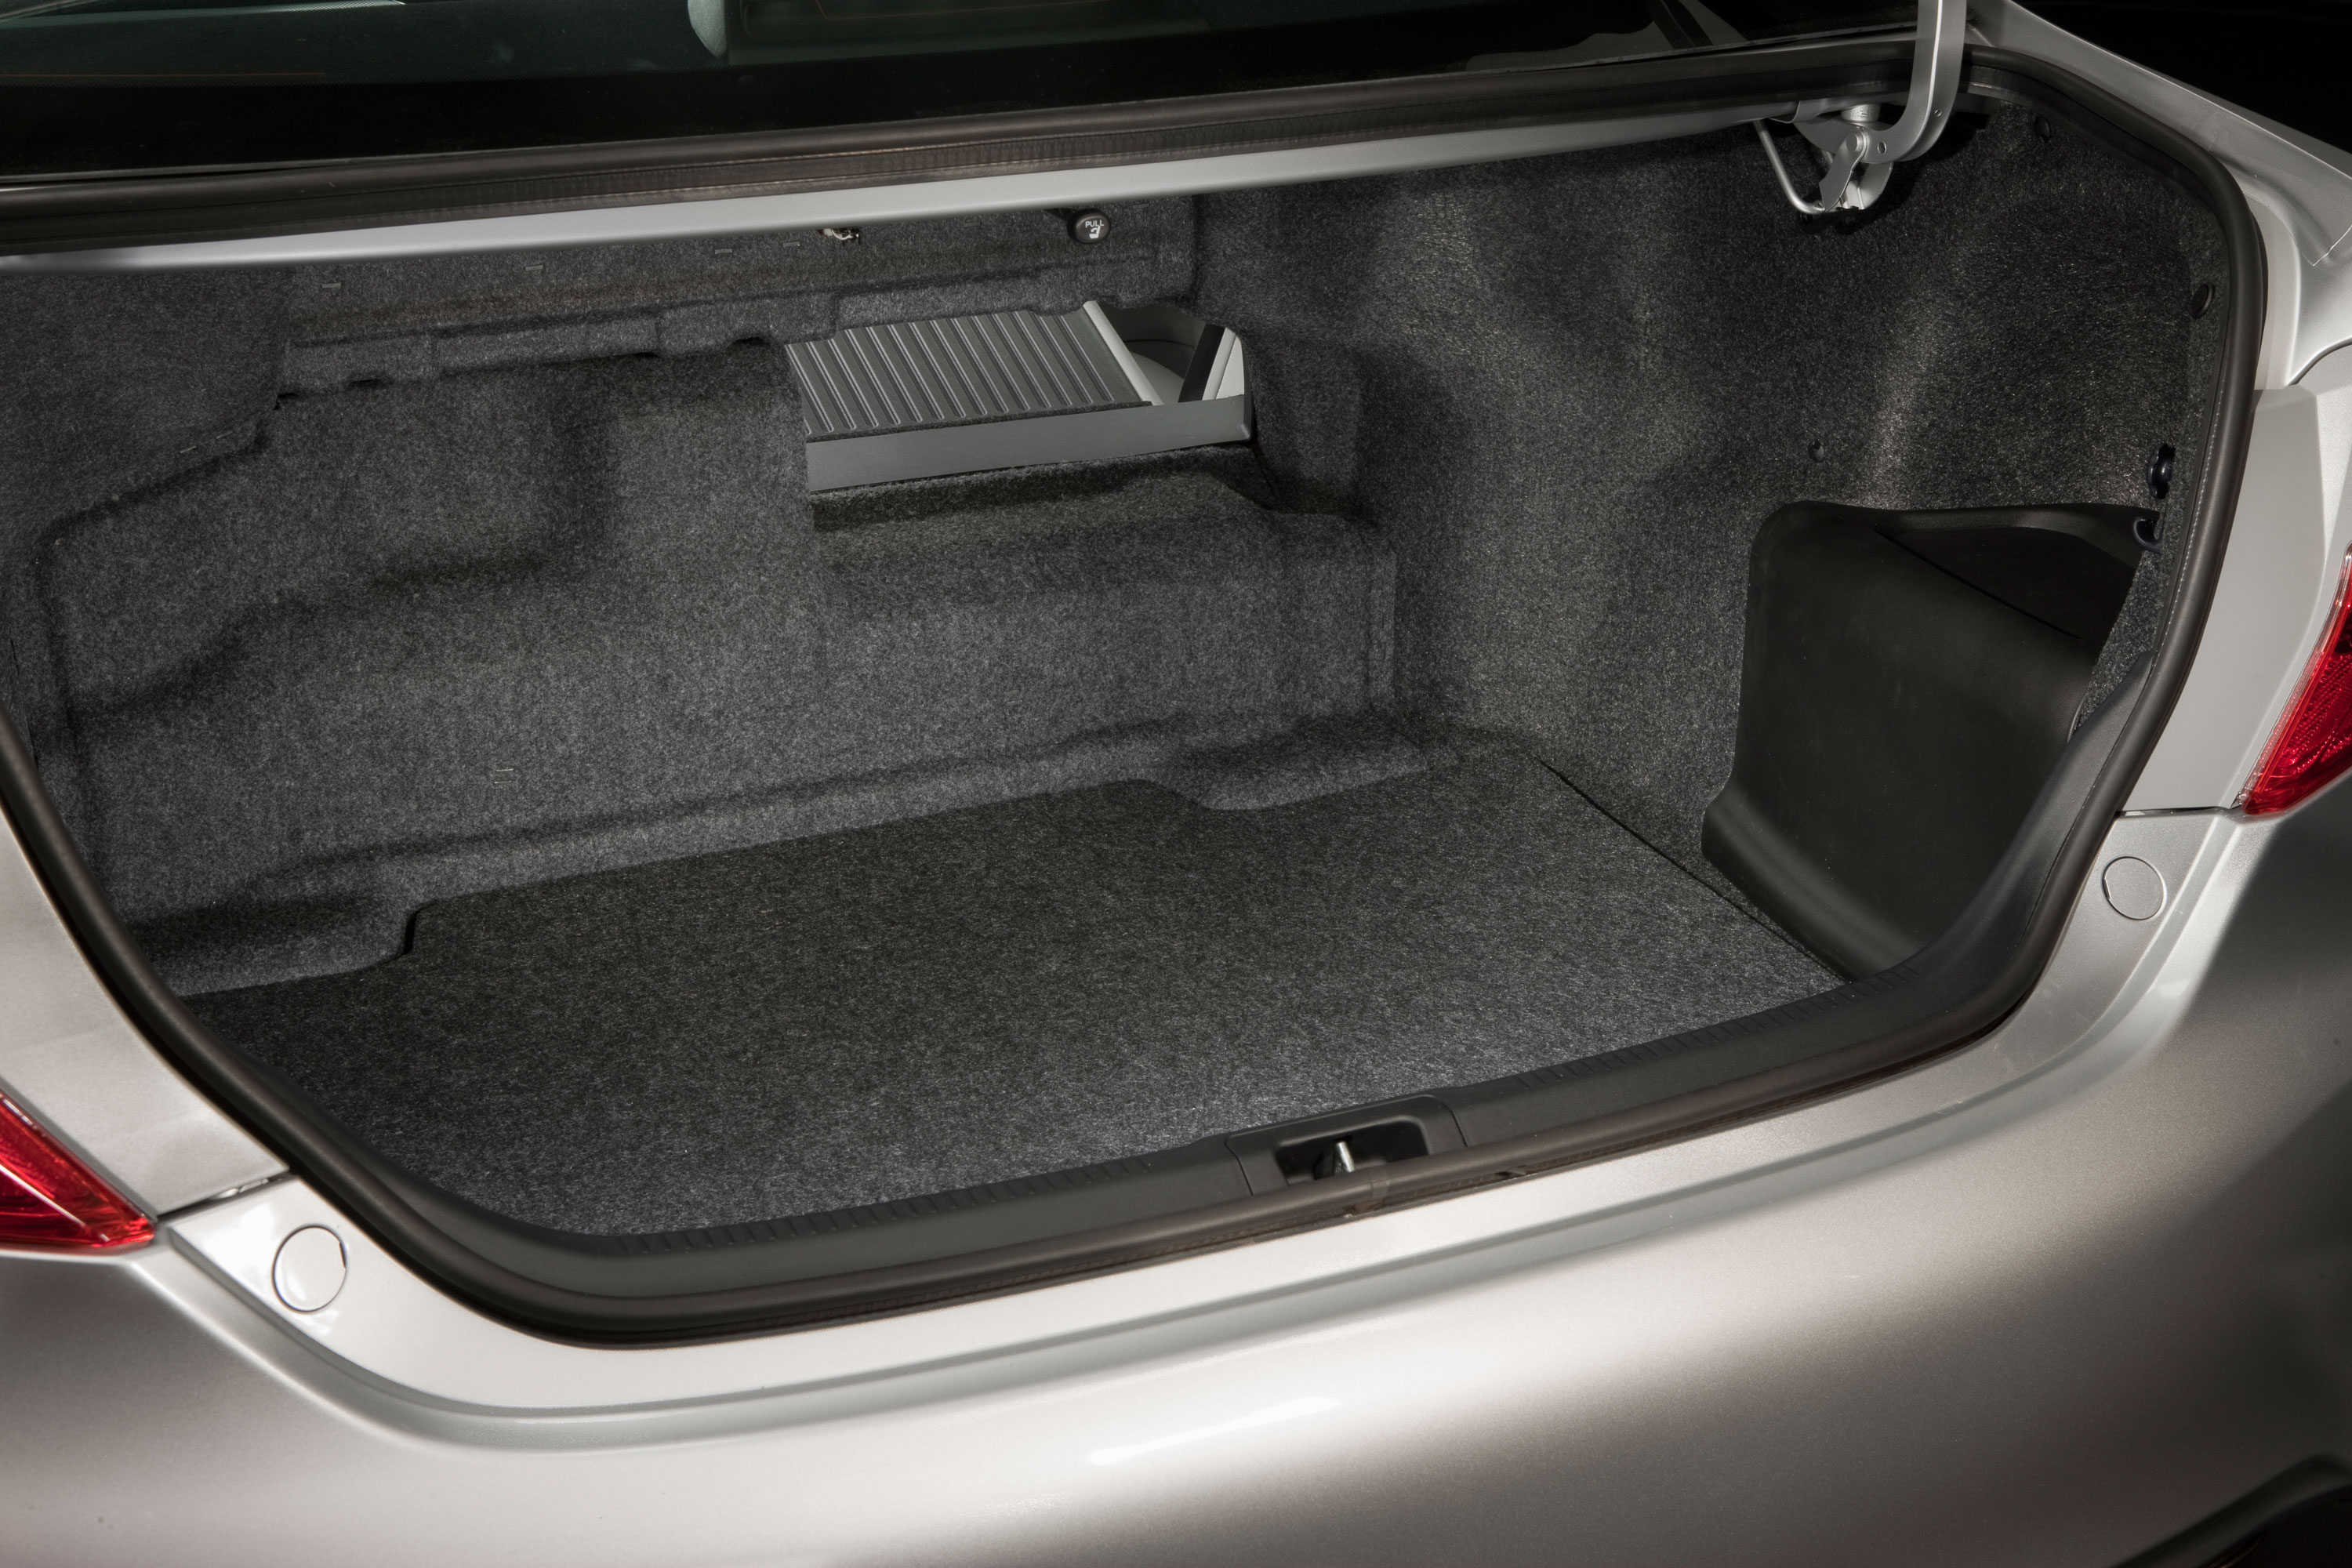 stud or dud toyota presents the 2012 camry to the world autospies auto news. Black Bedroom Furniture Sets. Home Design Ideas